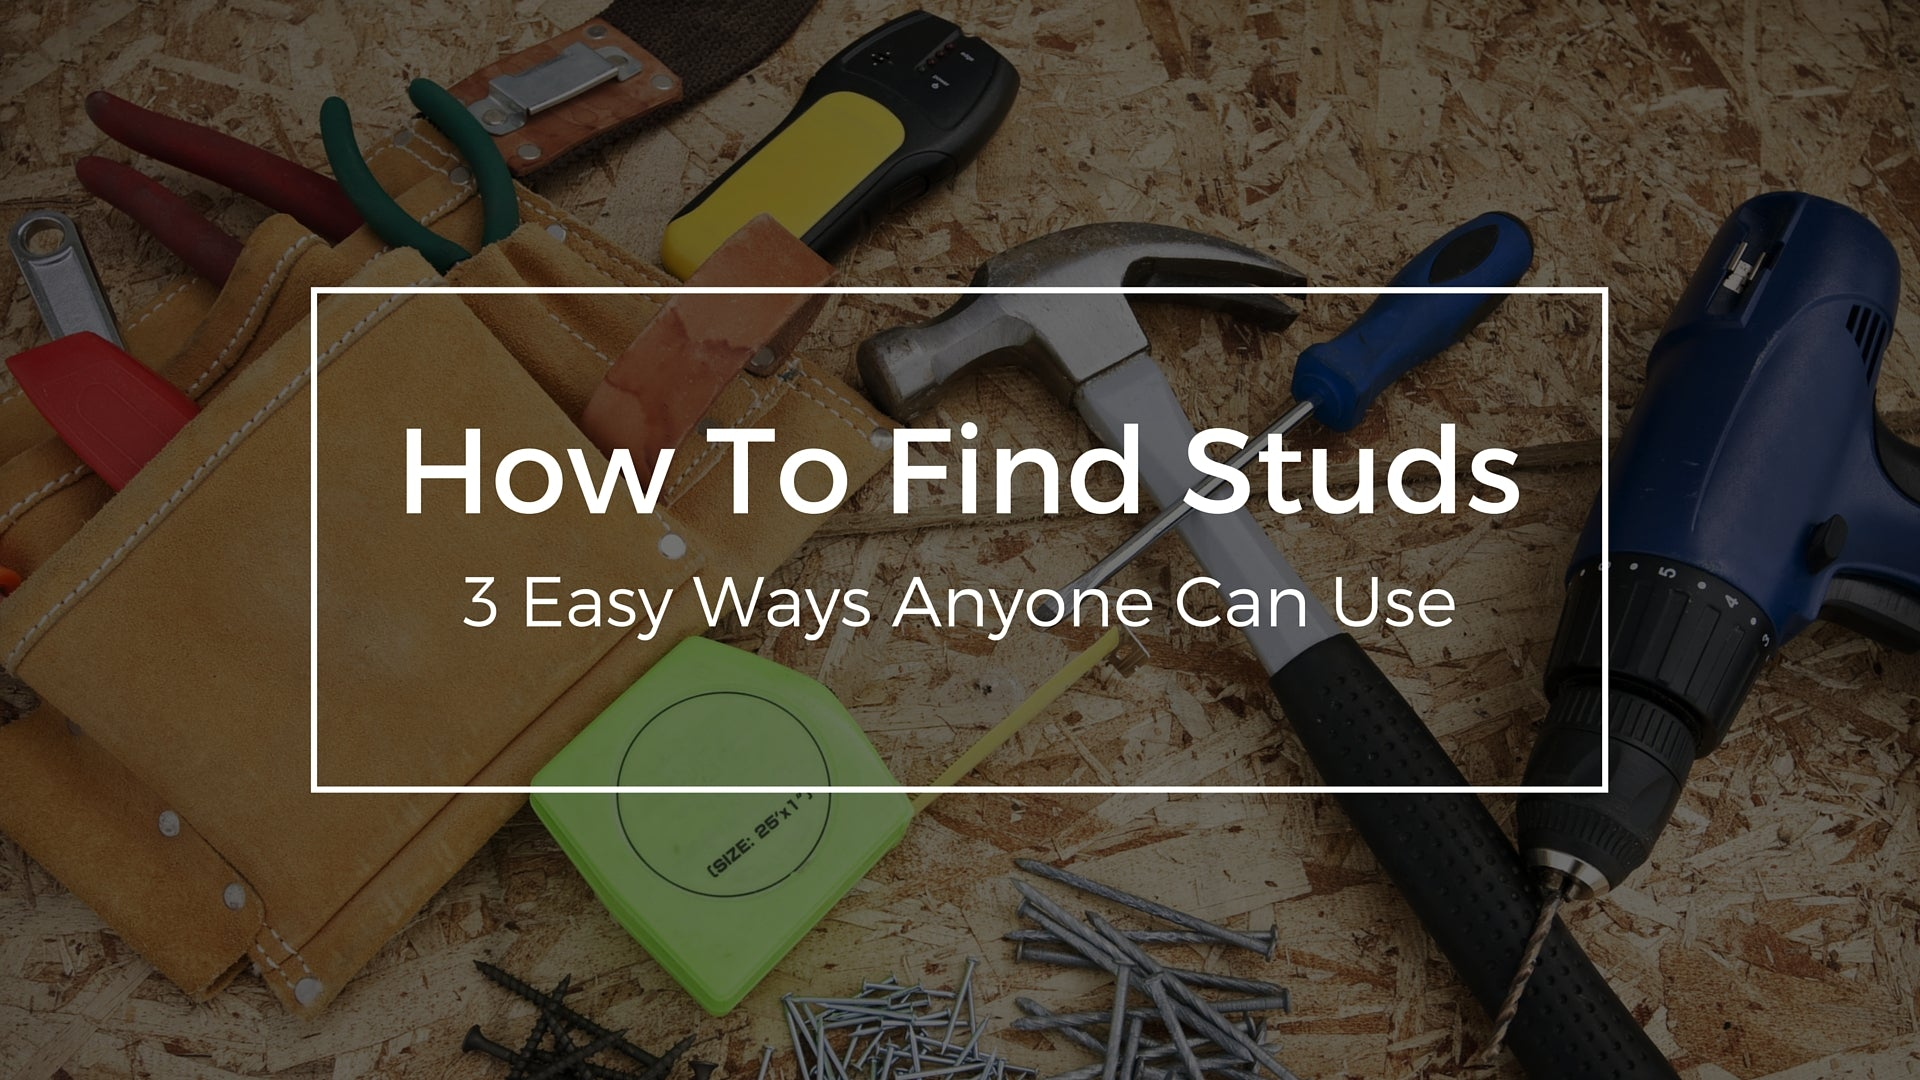 3 Easy Ways on How To Find Studs